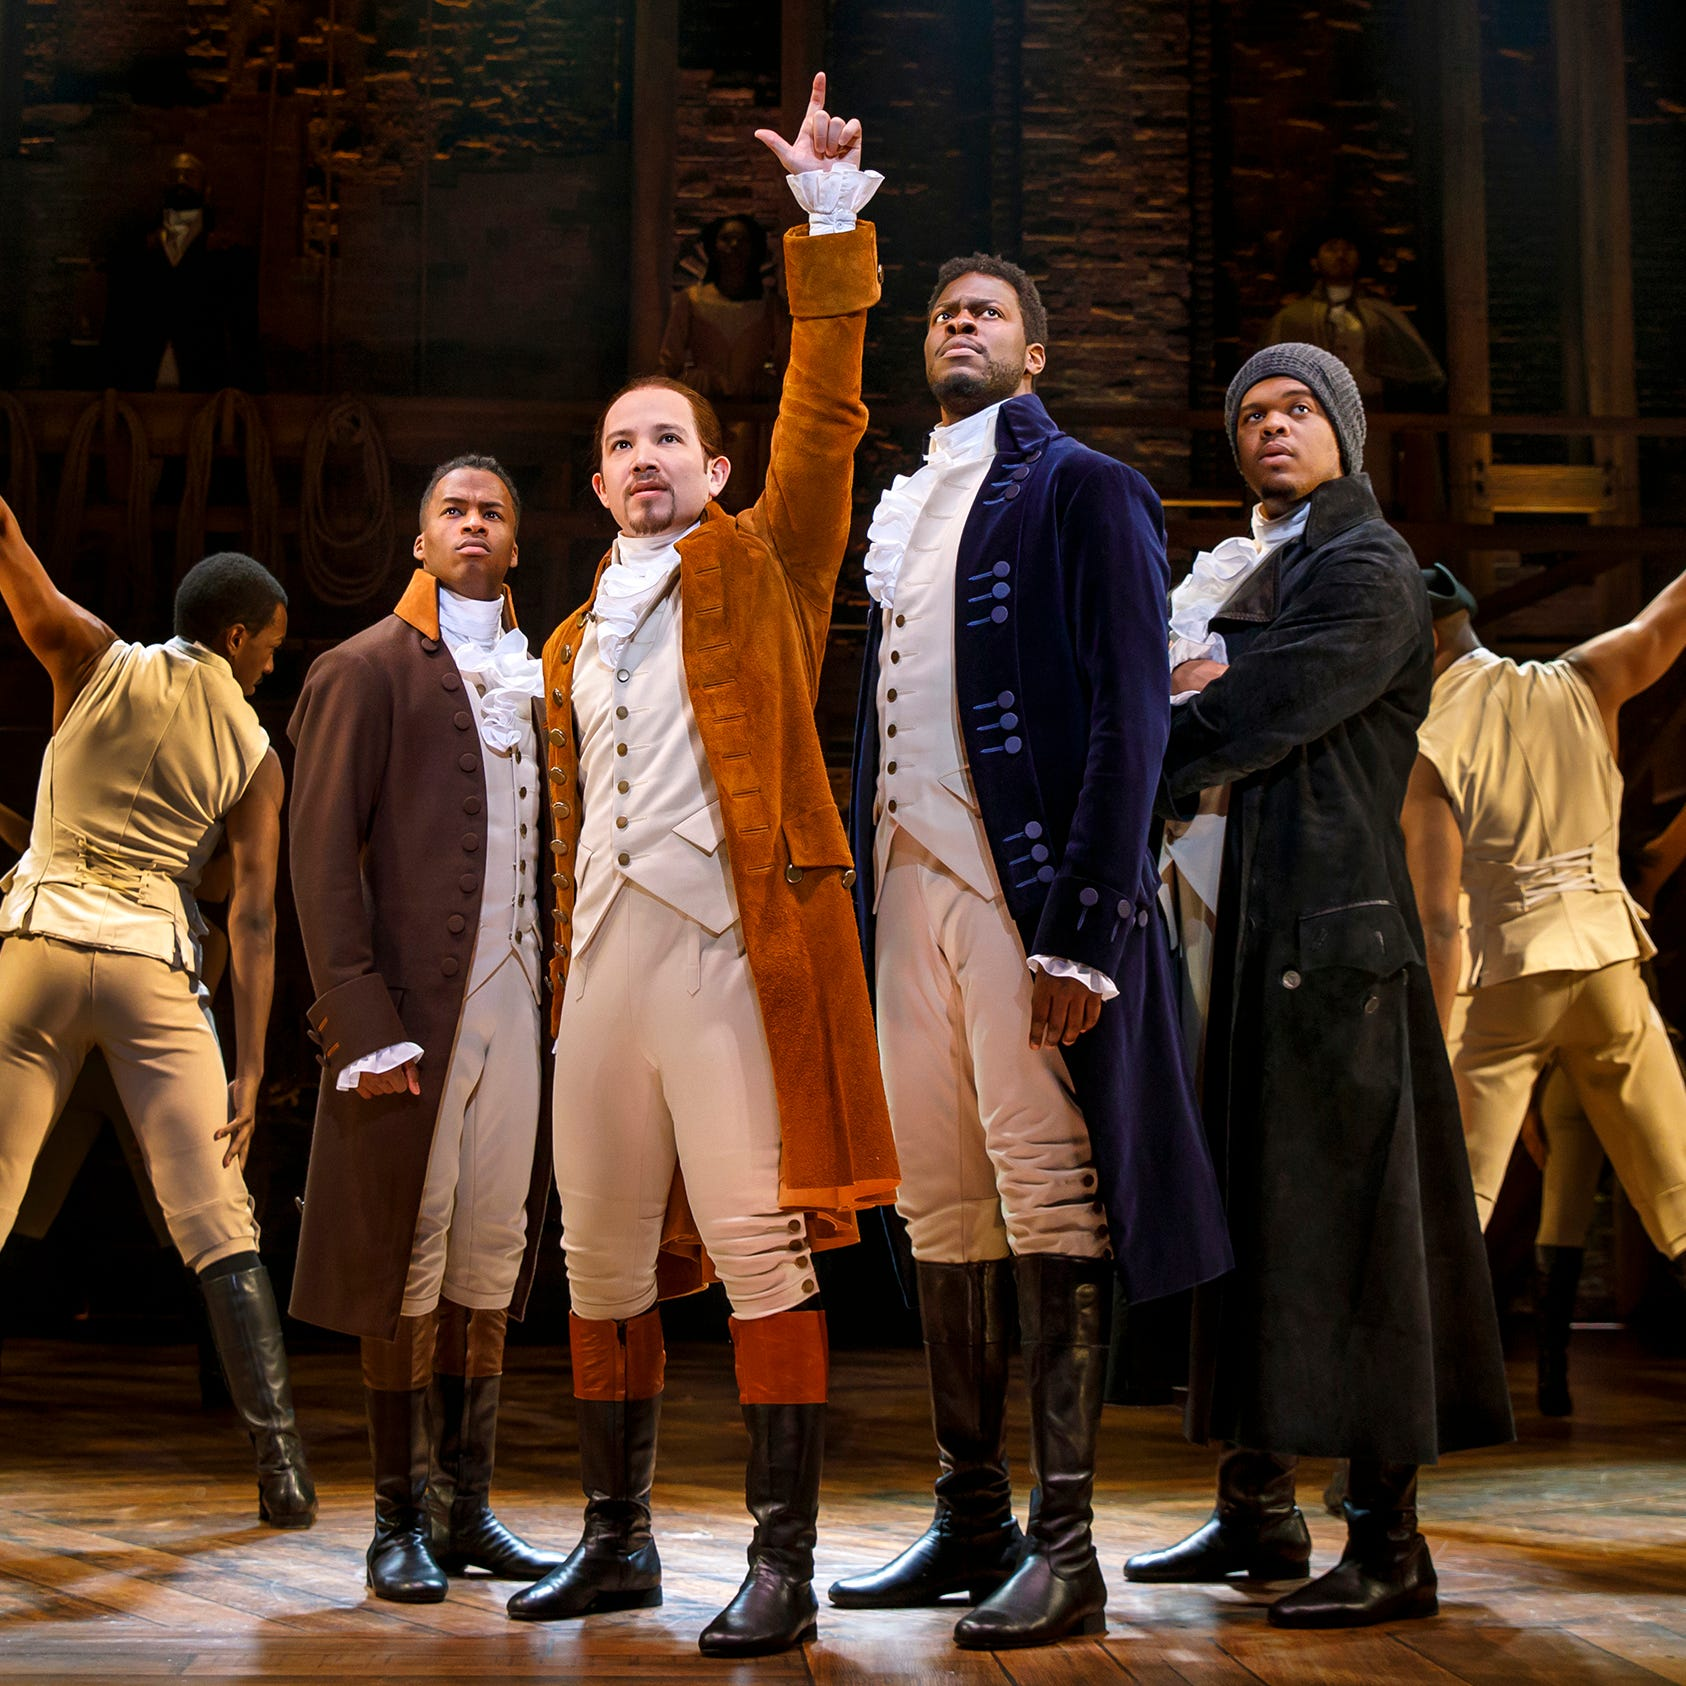 Tickets to see 'Hamilton' in Detroit go on sale Jan. 25